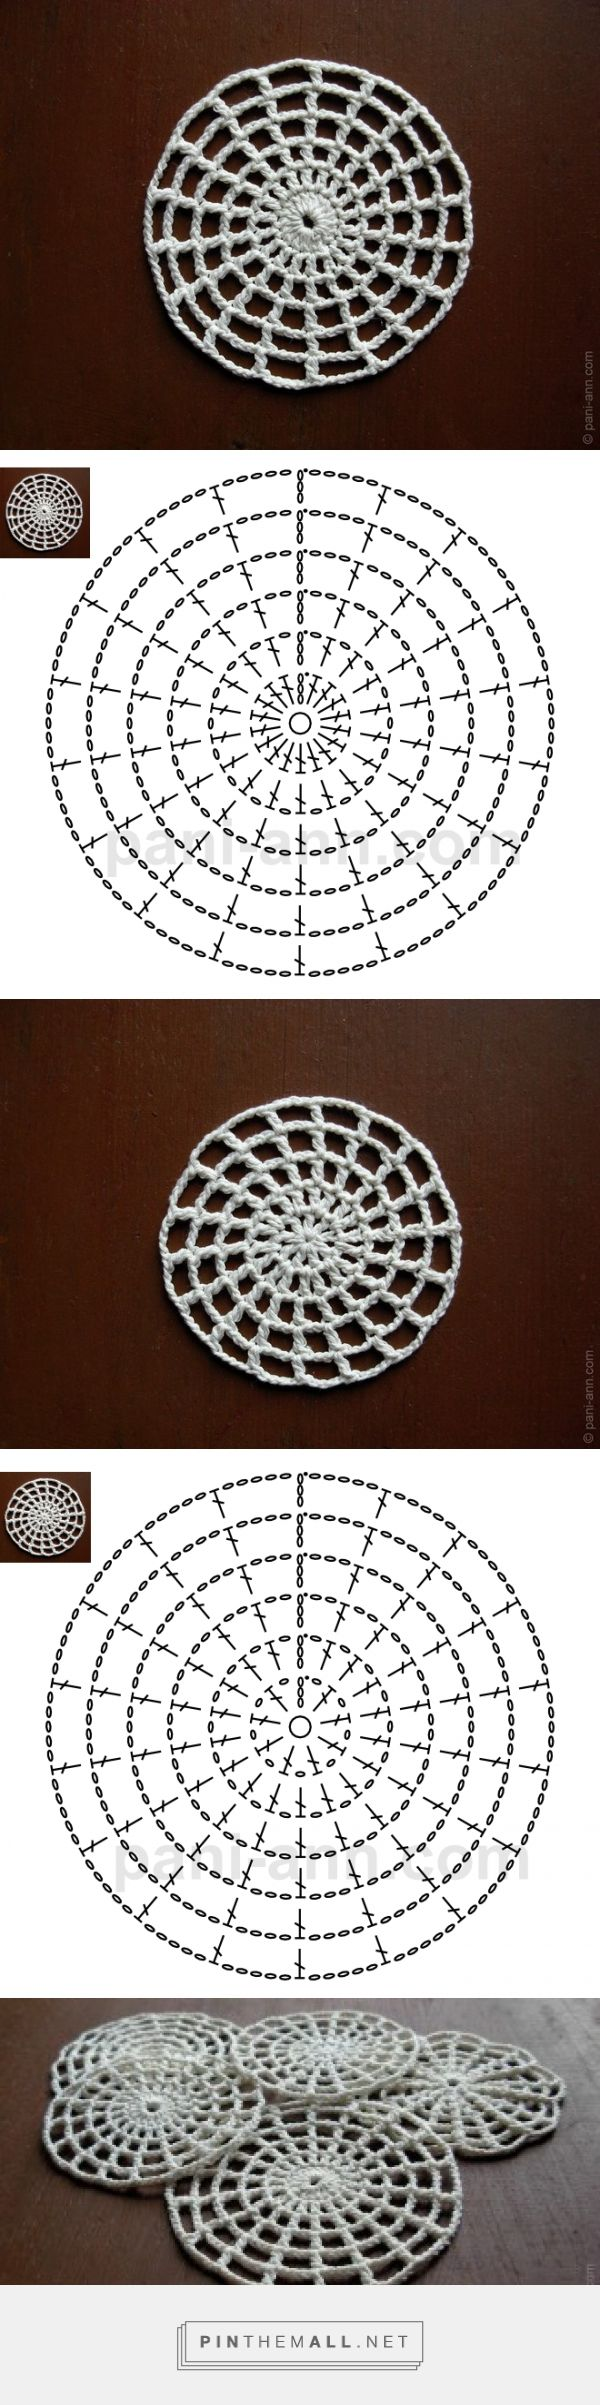 filet crochet in the round - solid centre and filet (ie with spacing ...